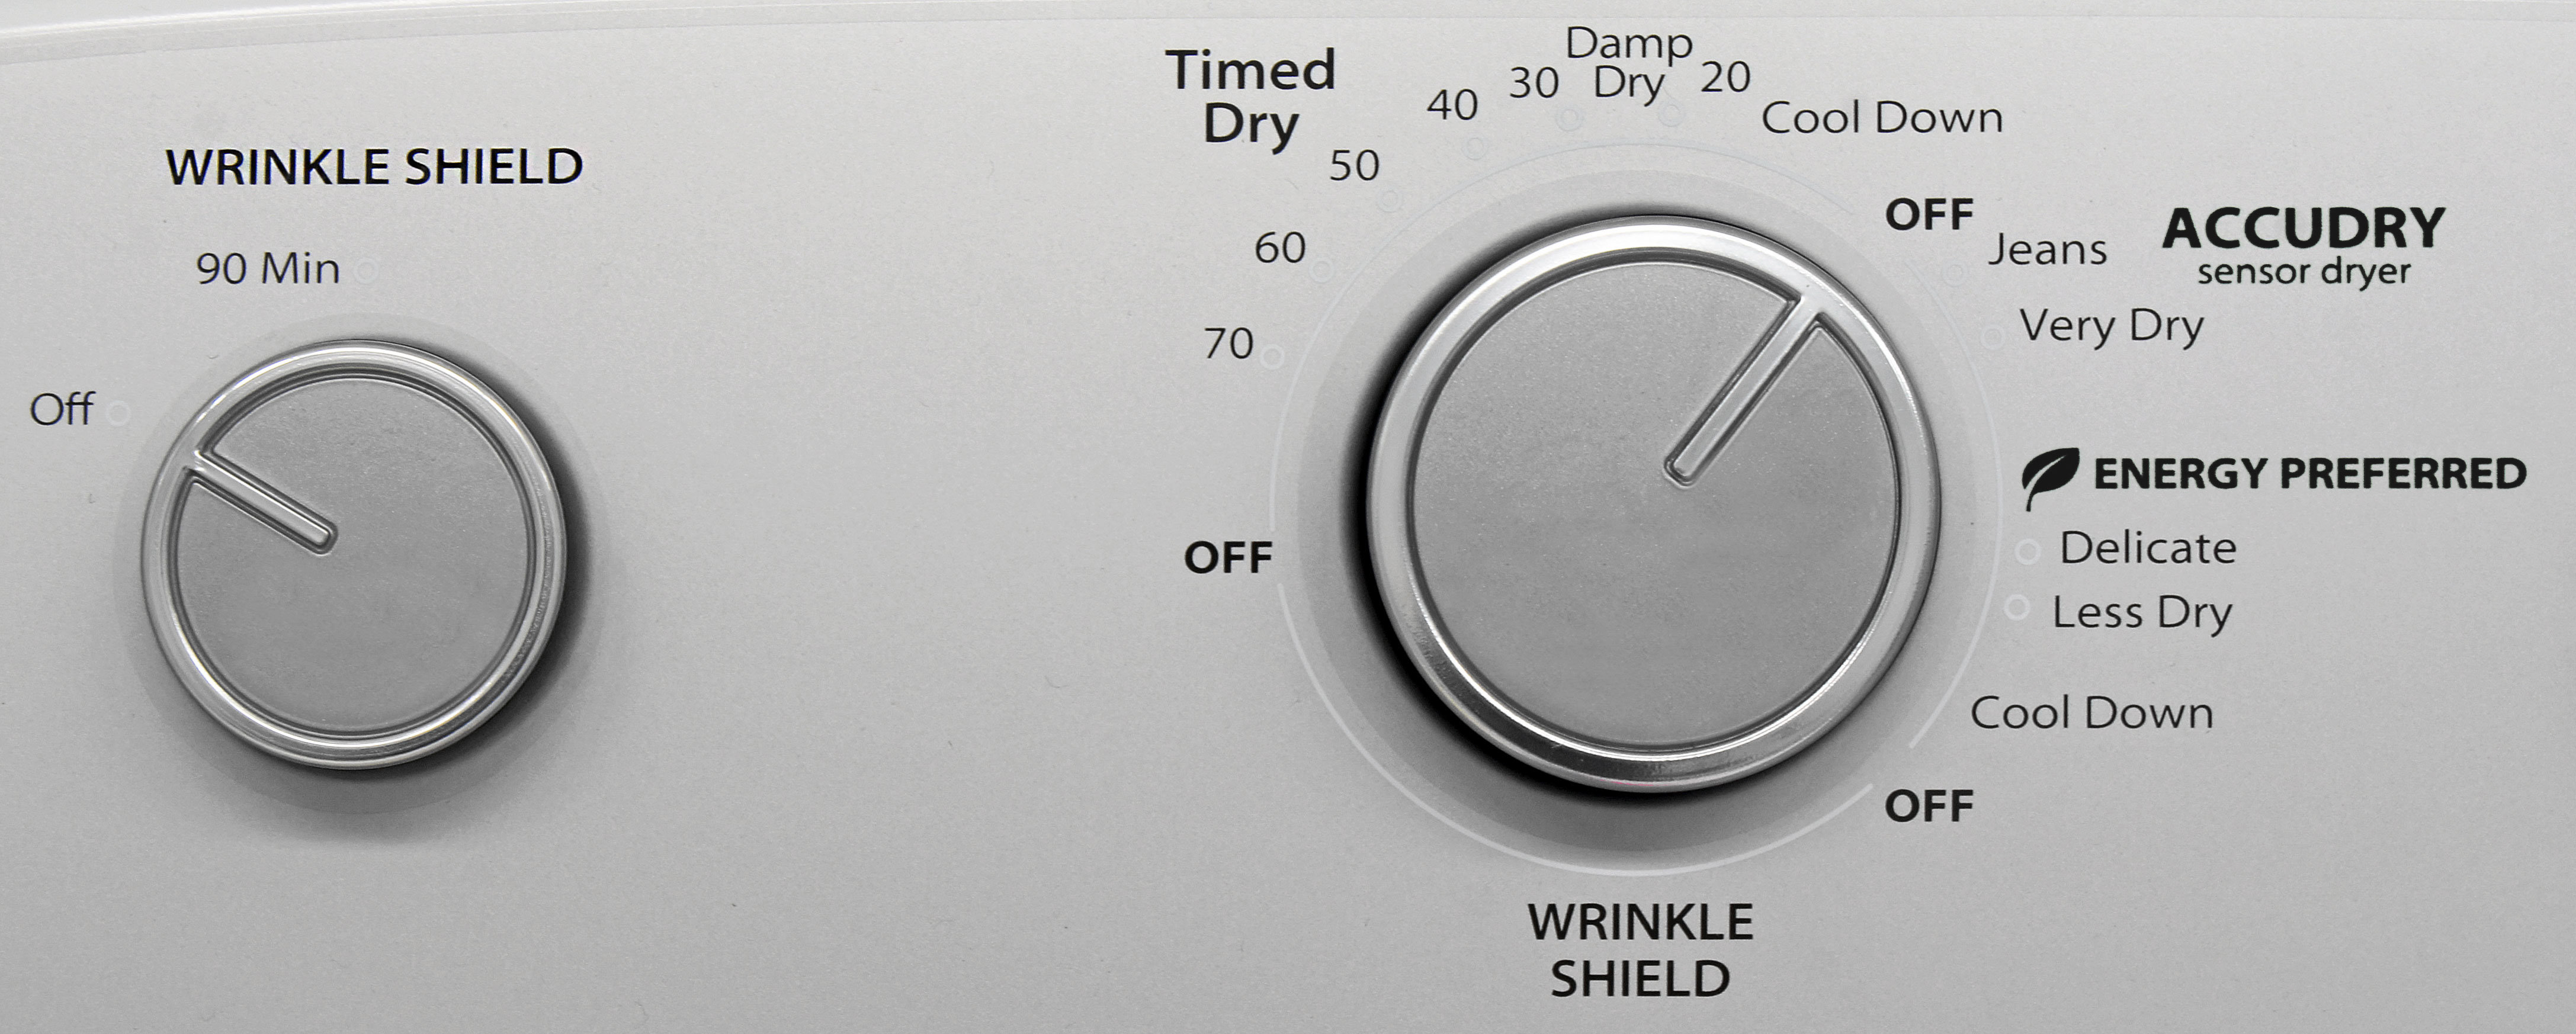 The Whirlpool WED4915EW's rank controls mean choosing a cycle is more of a ballpark guess than a precise selection.